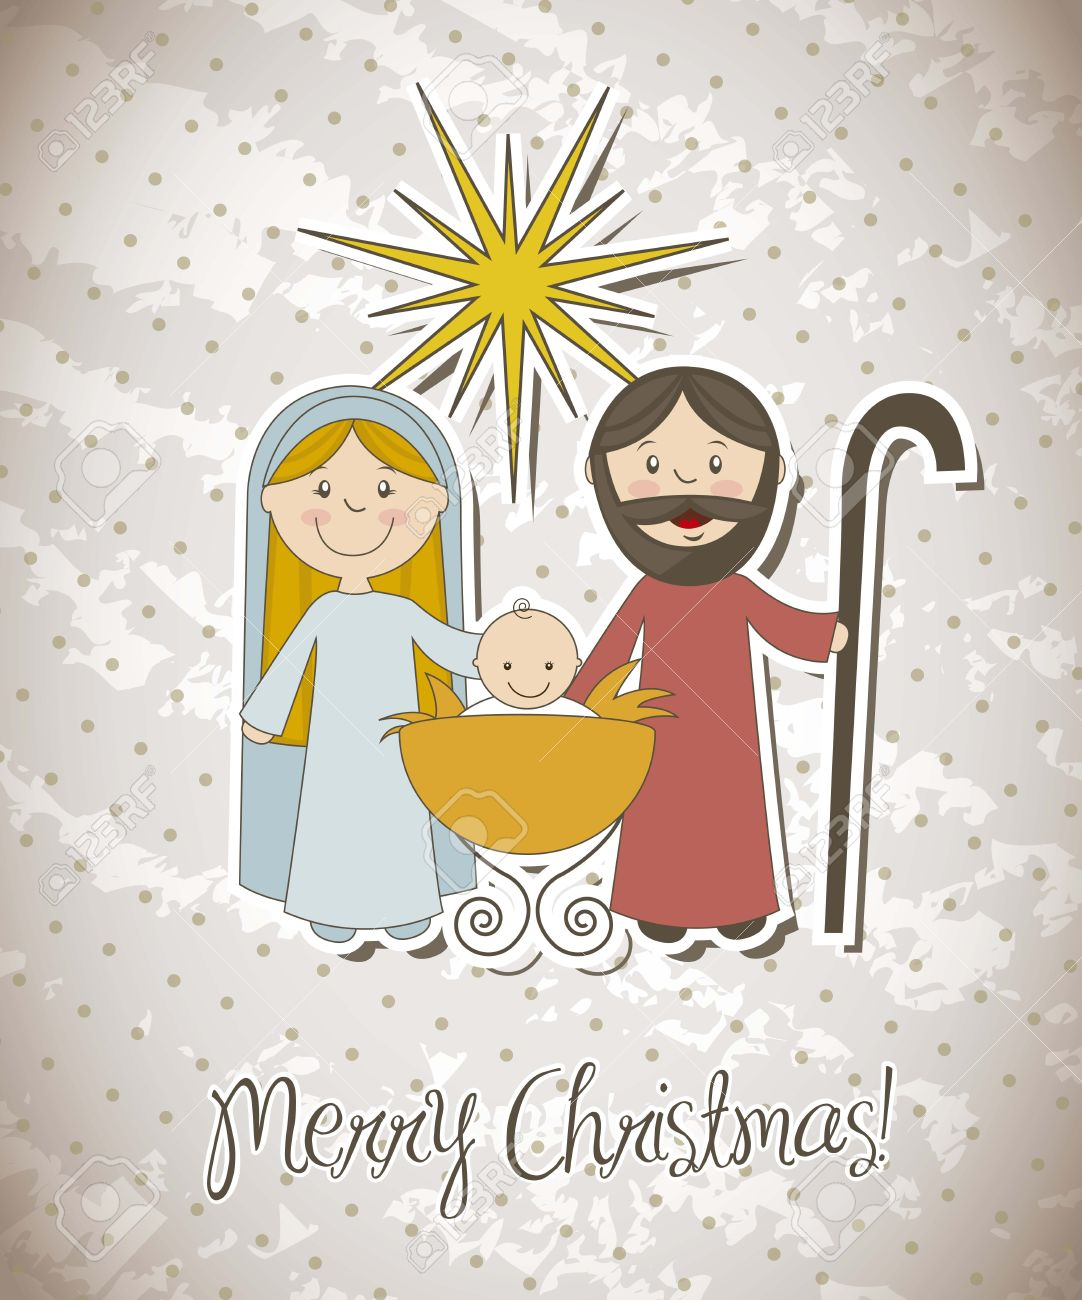 Christmas Card With Nativity Scene. Vector Illustration Royalty Free ...